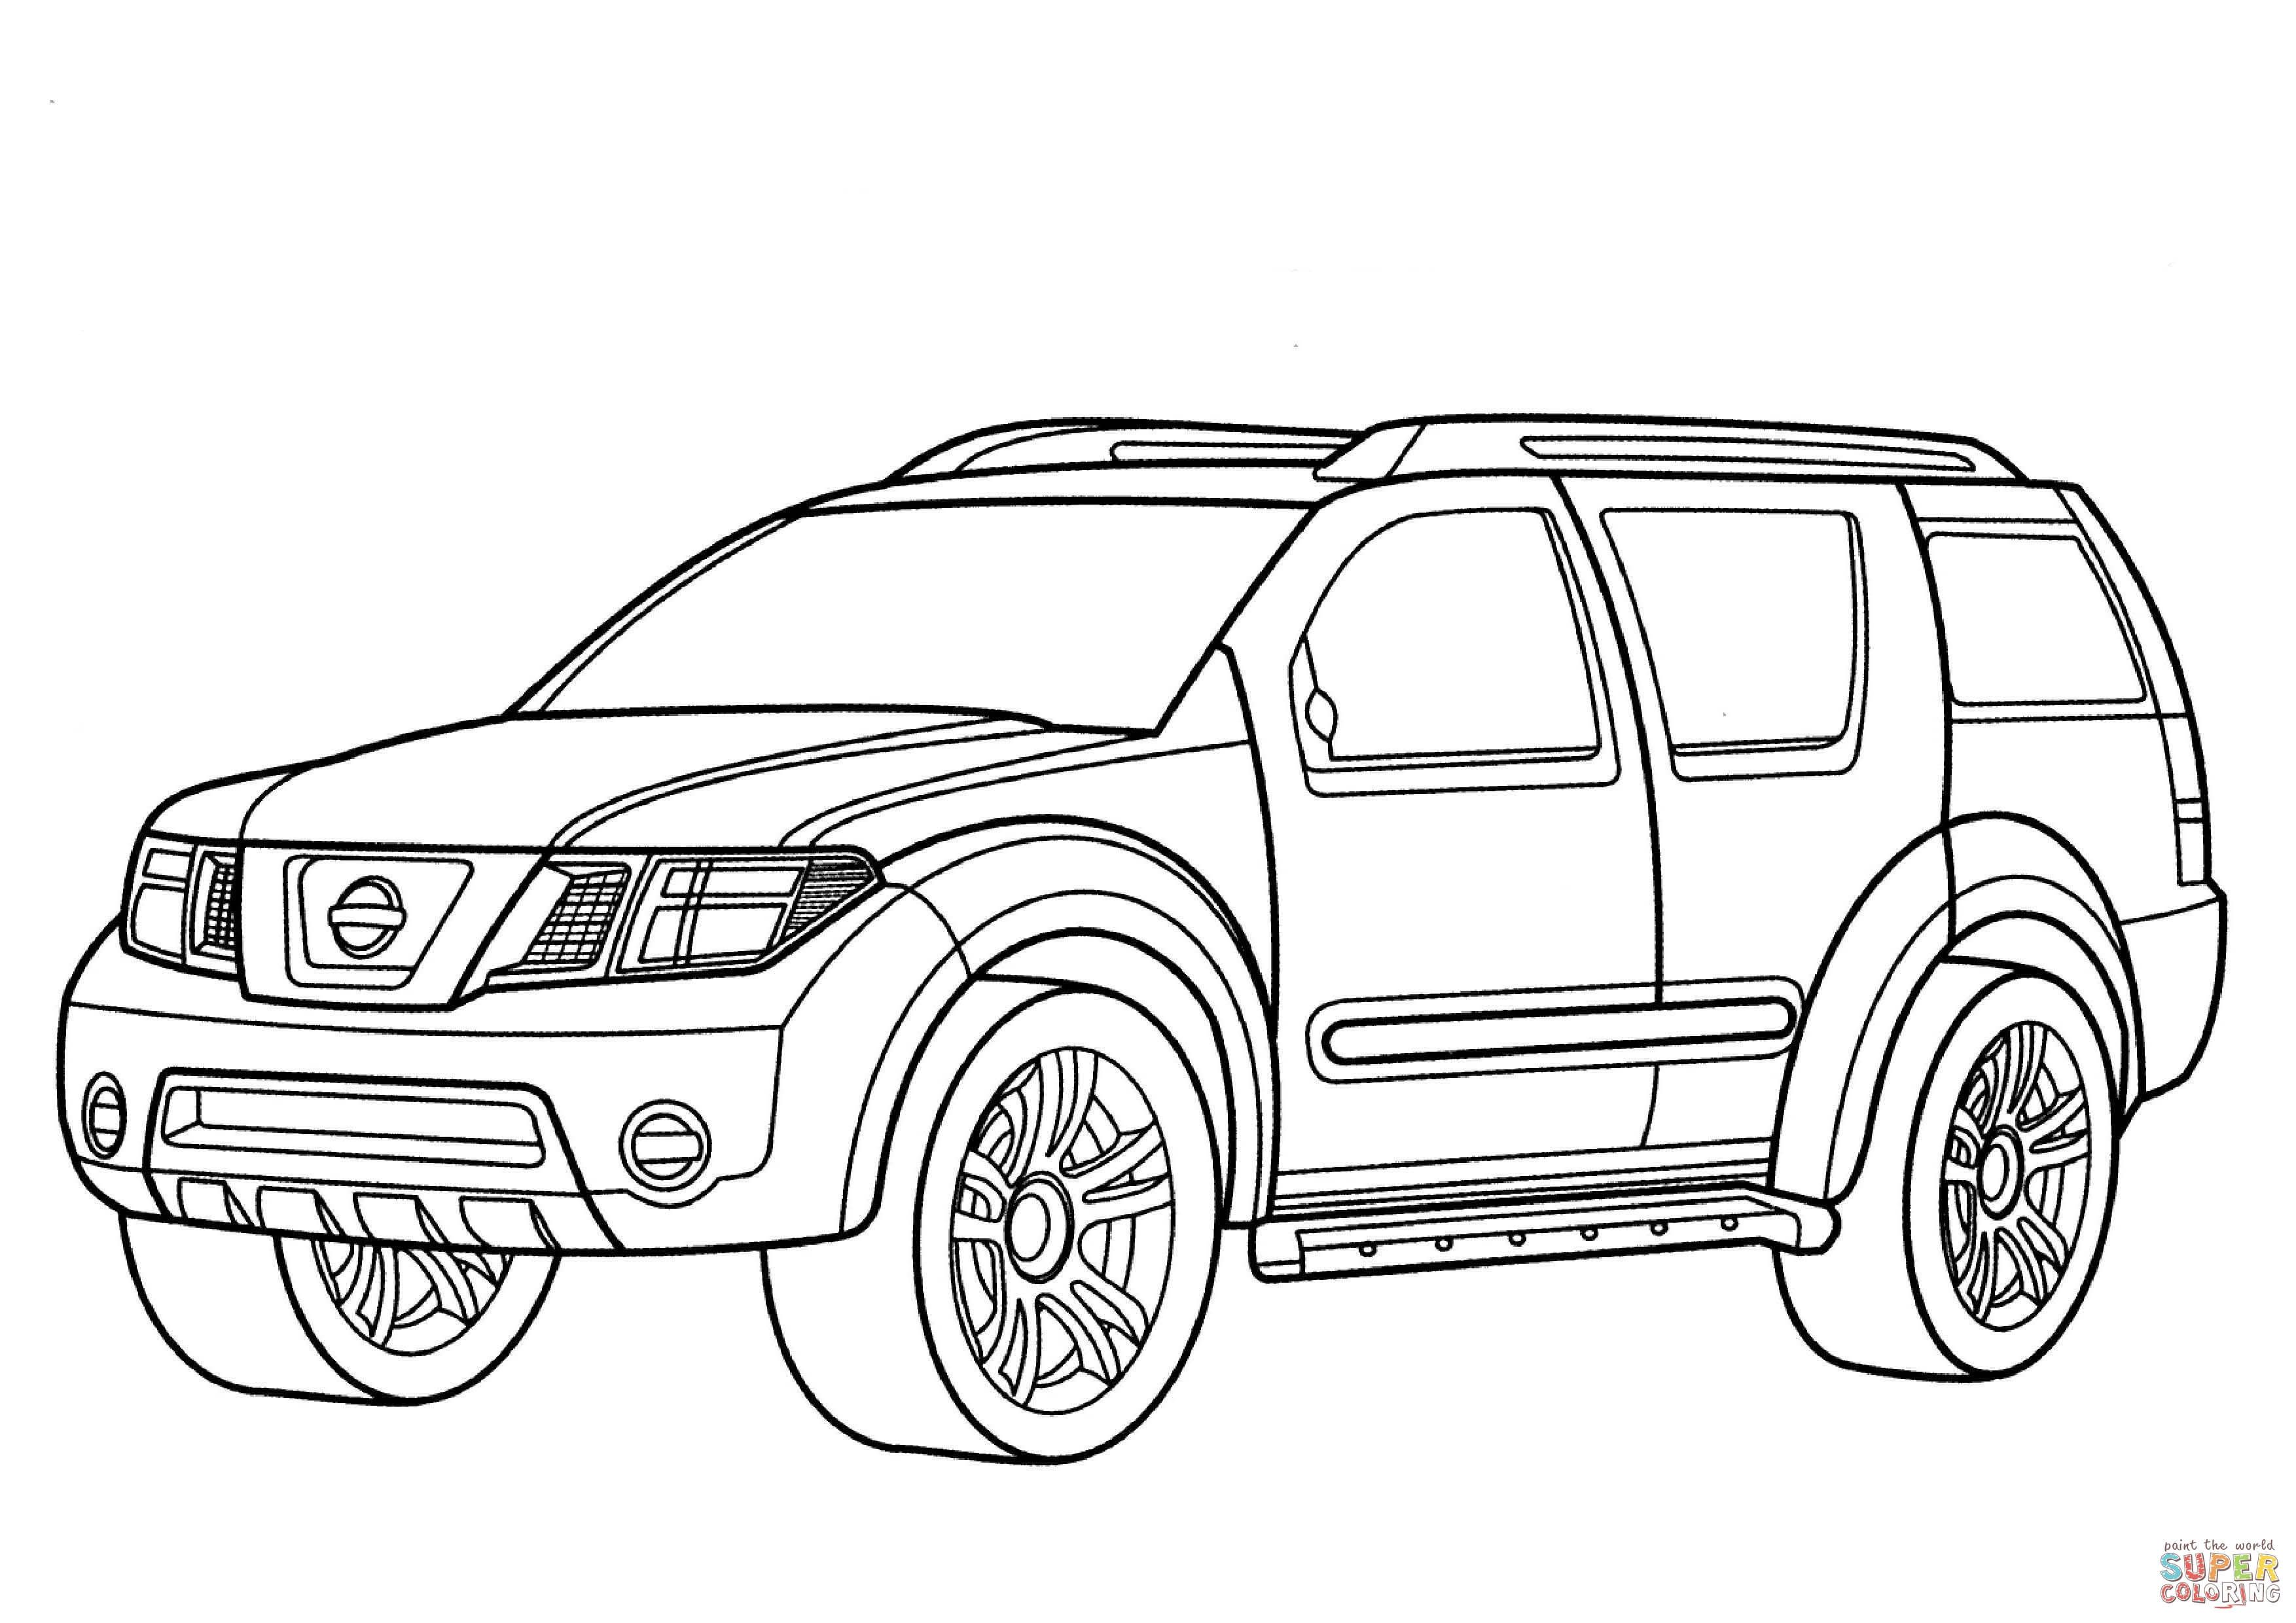 Nissan Dunehawk Coloring Page